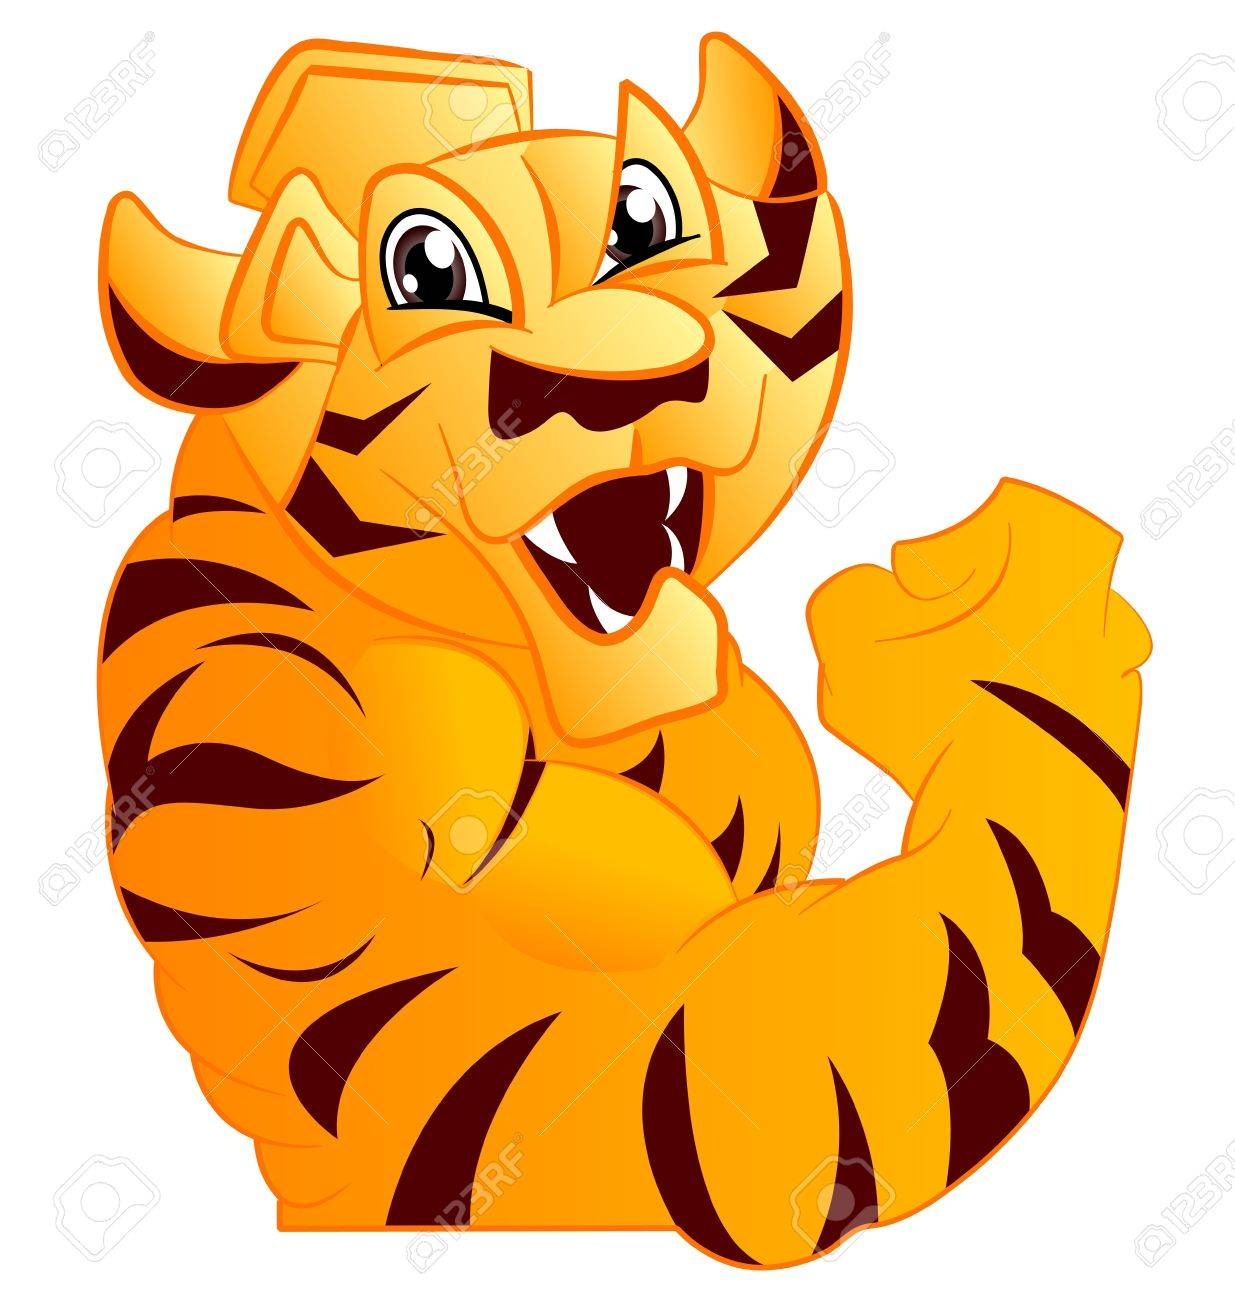 Tiger Mascot Body with Paws and Claws Stock Vector - 10853259